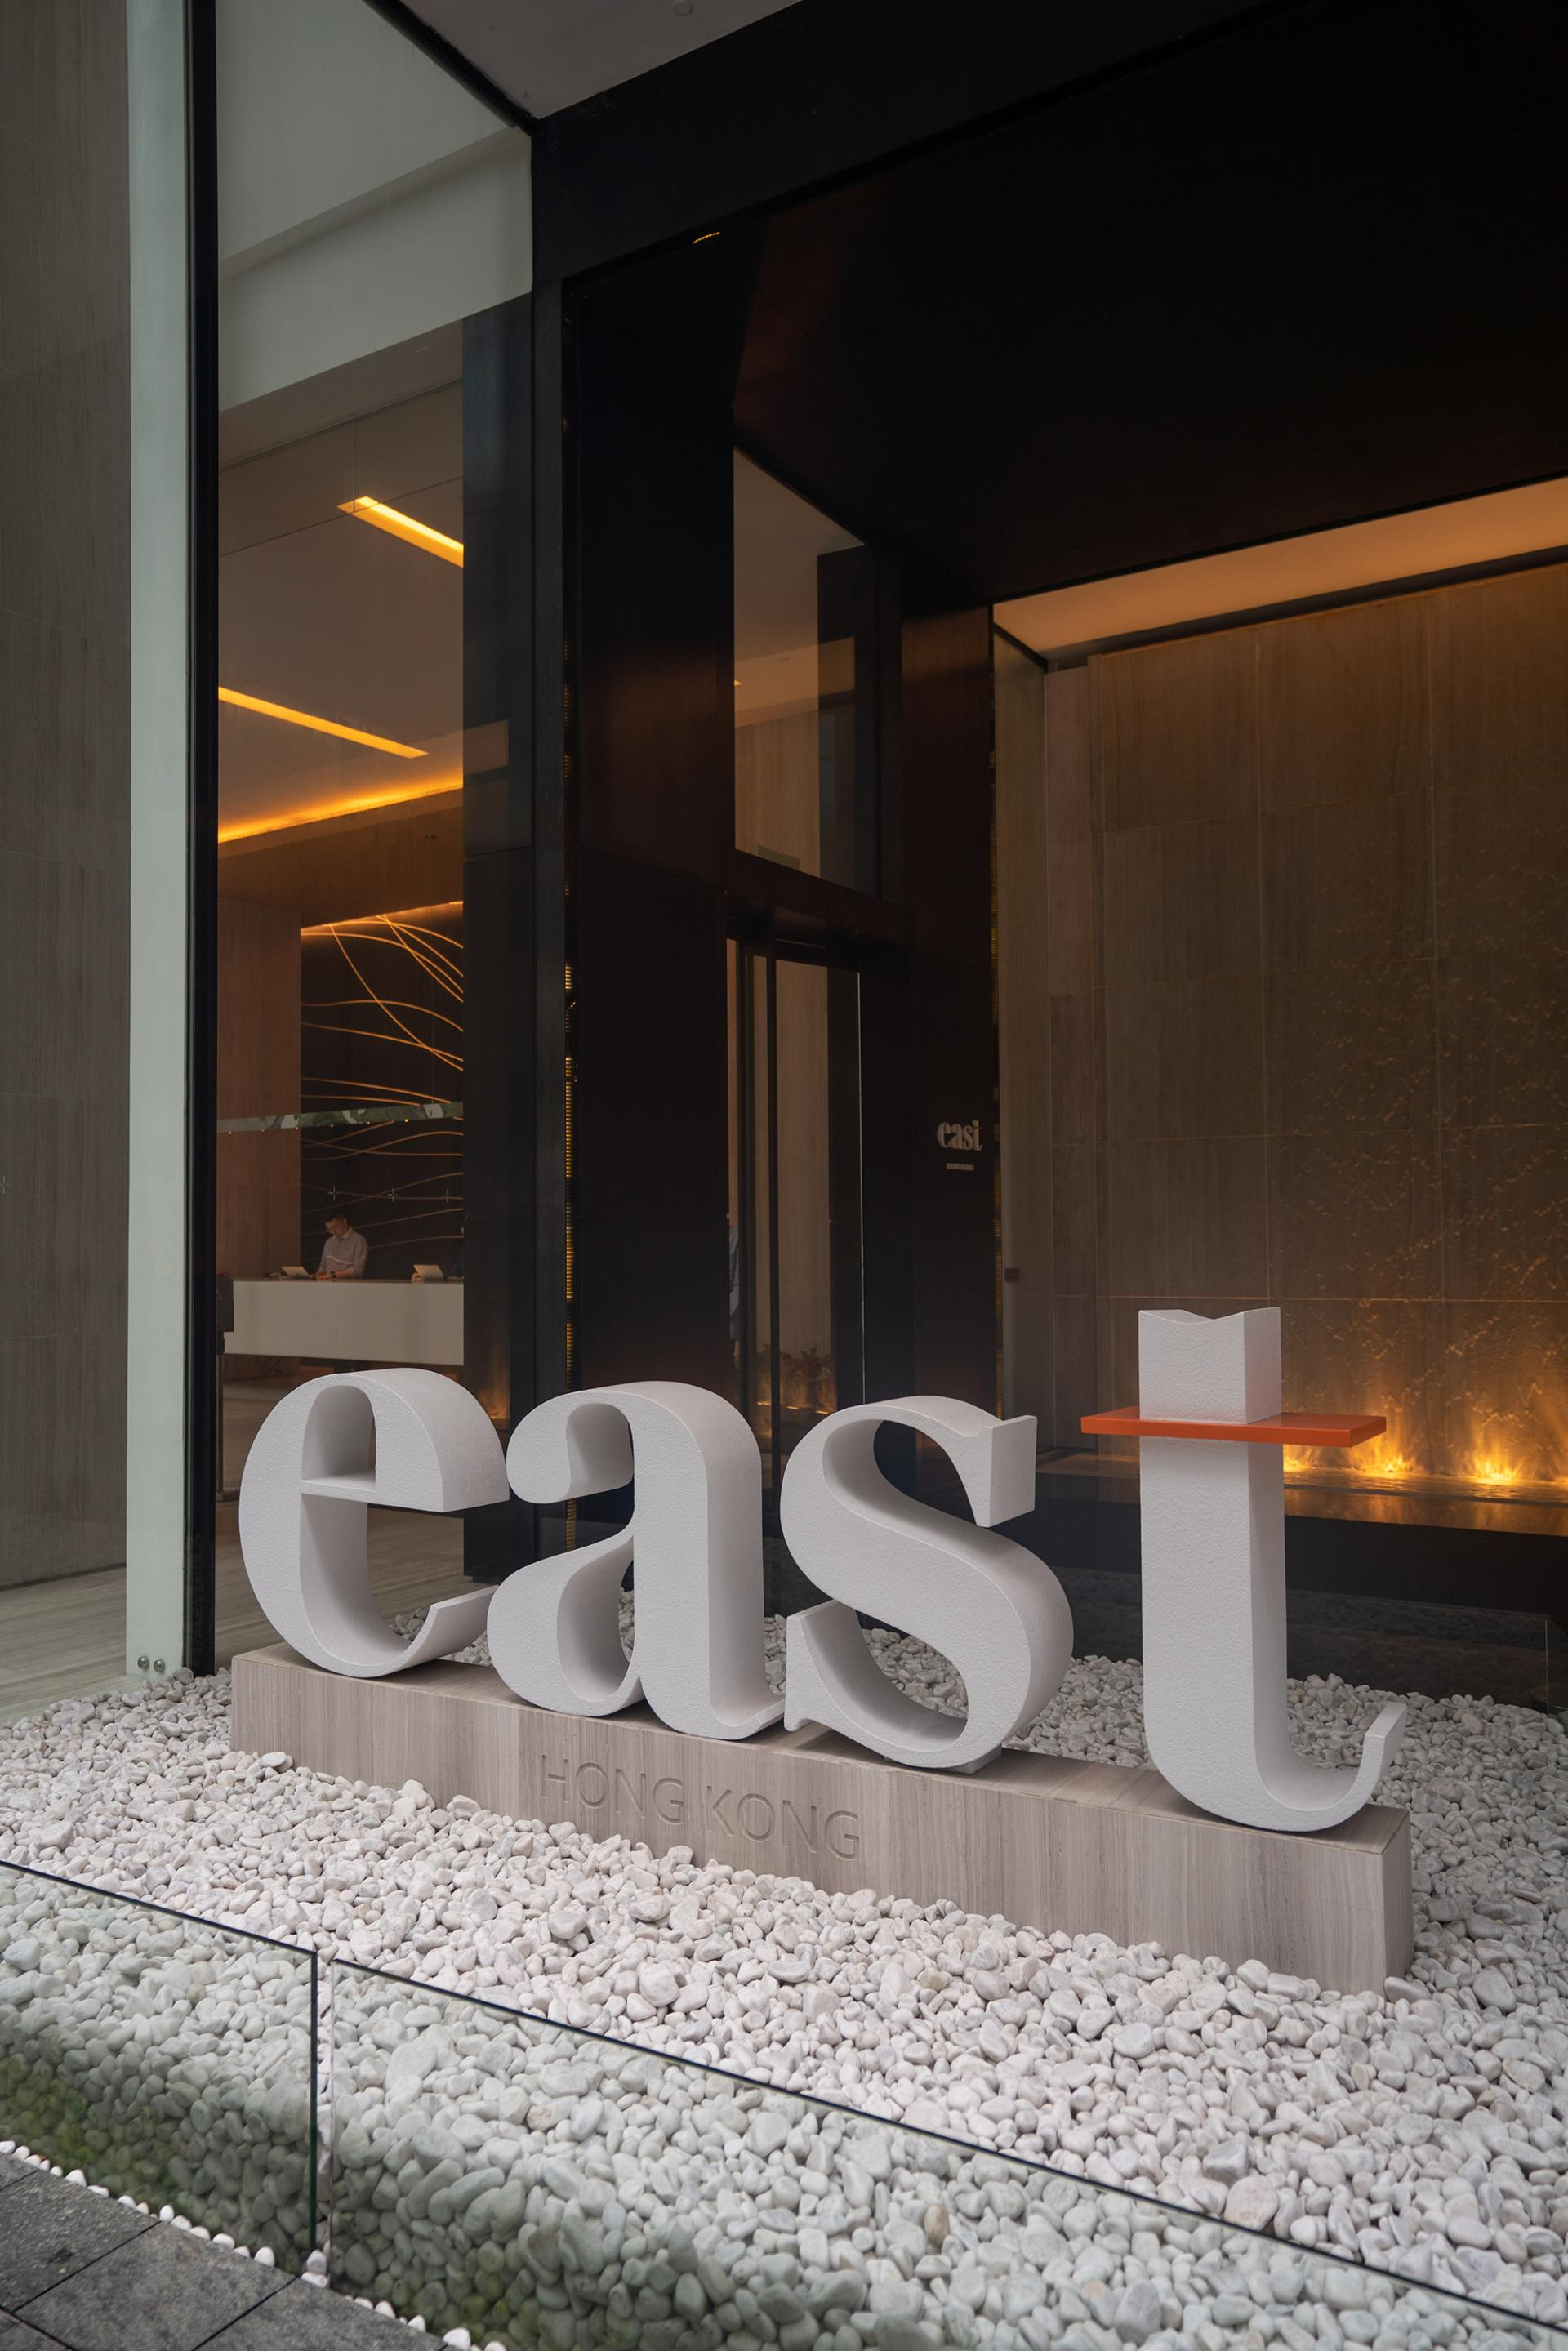 Complete review of EAST, Hong Kong.